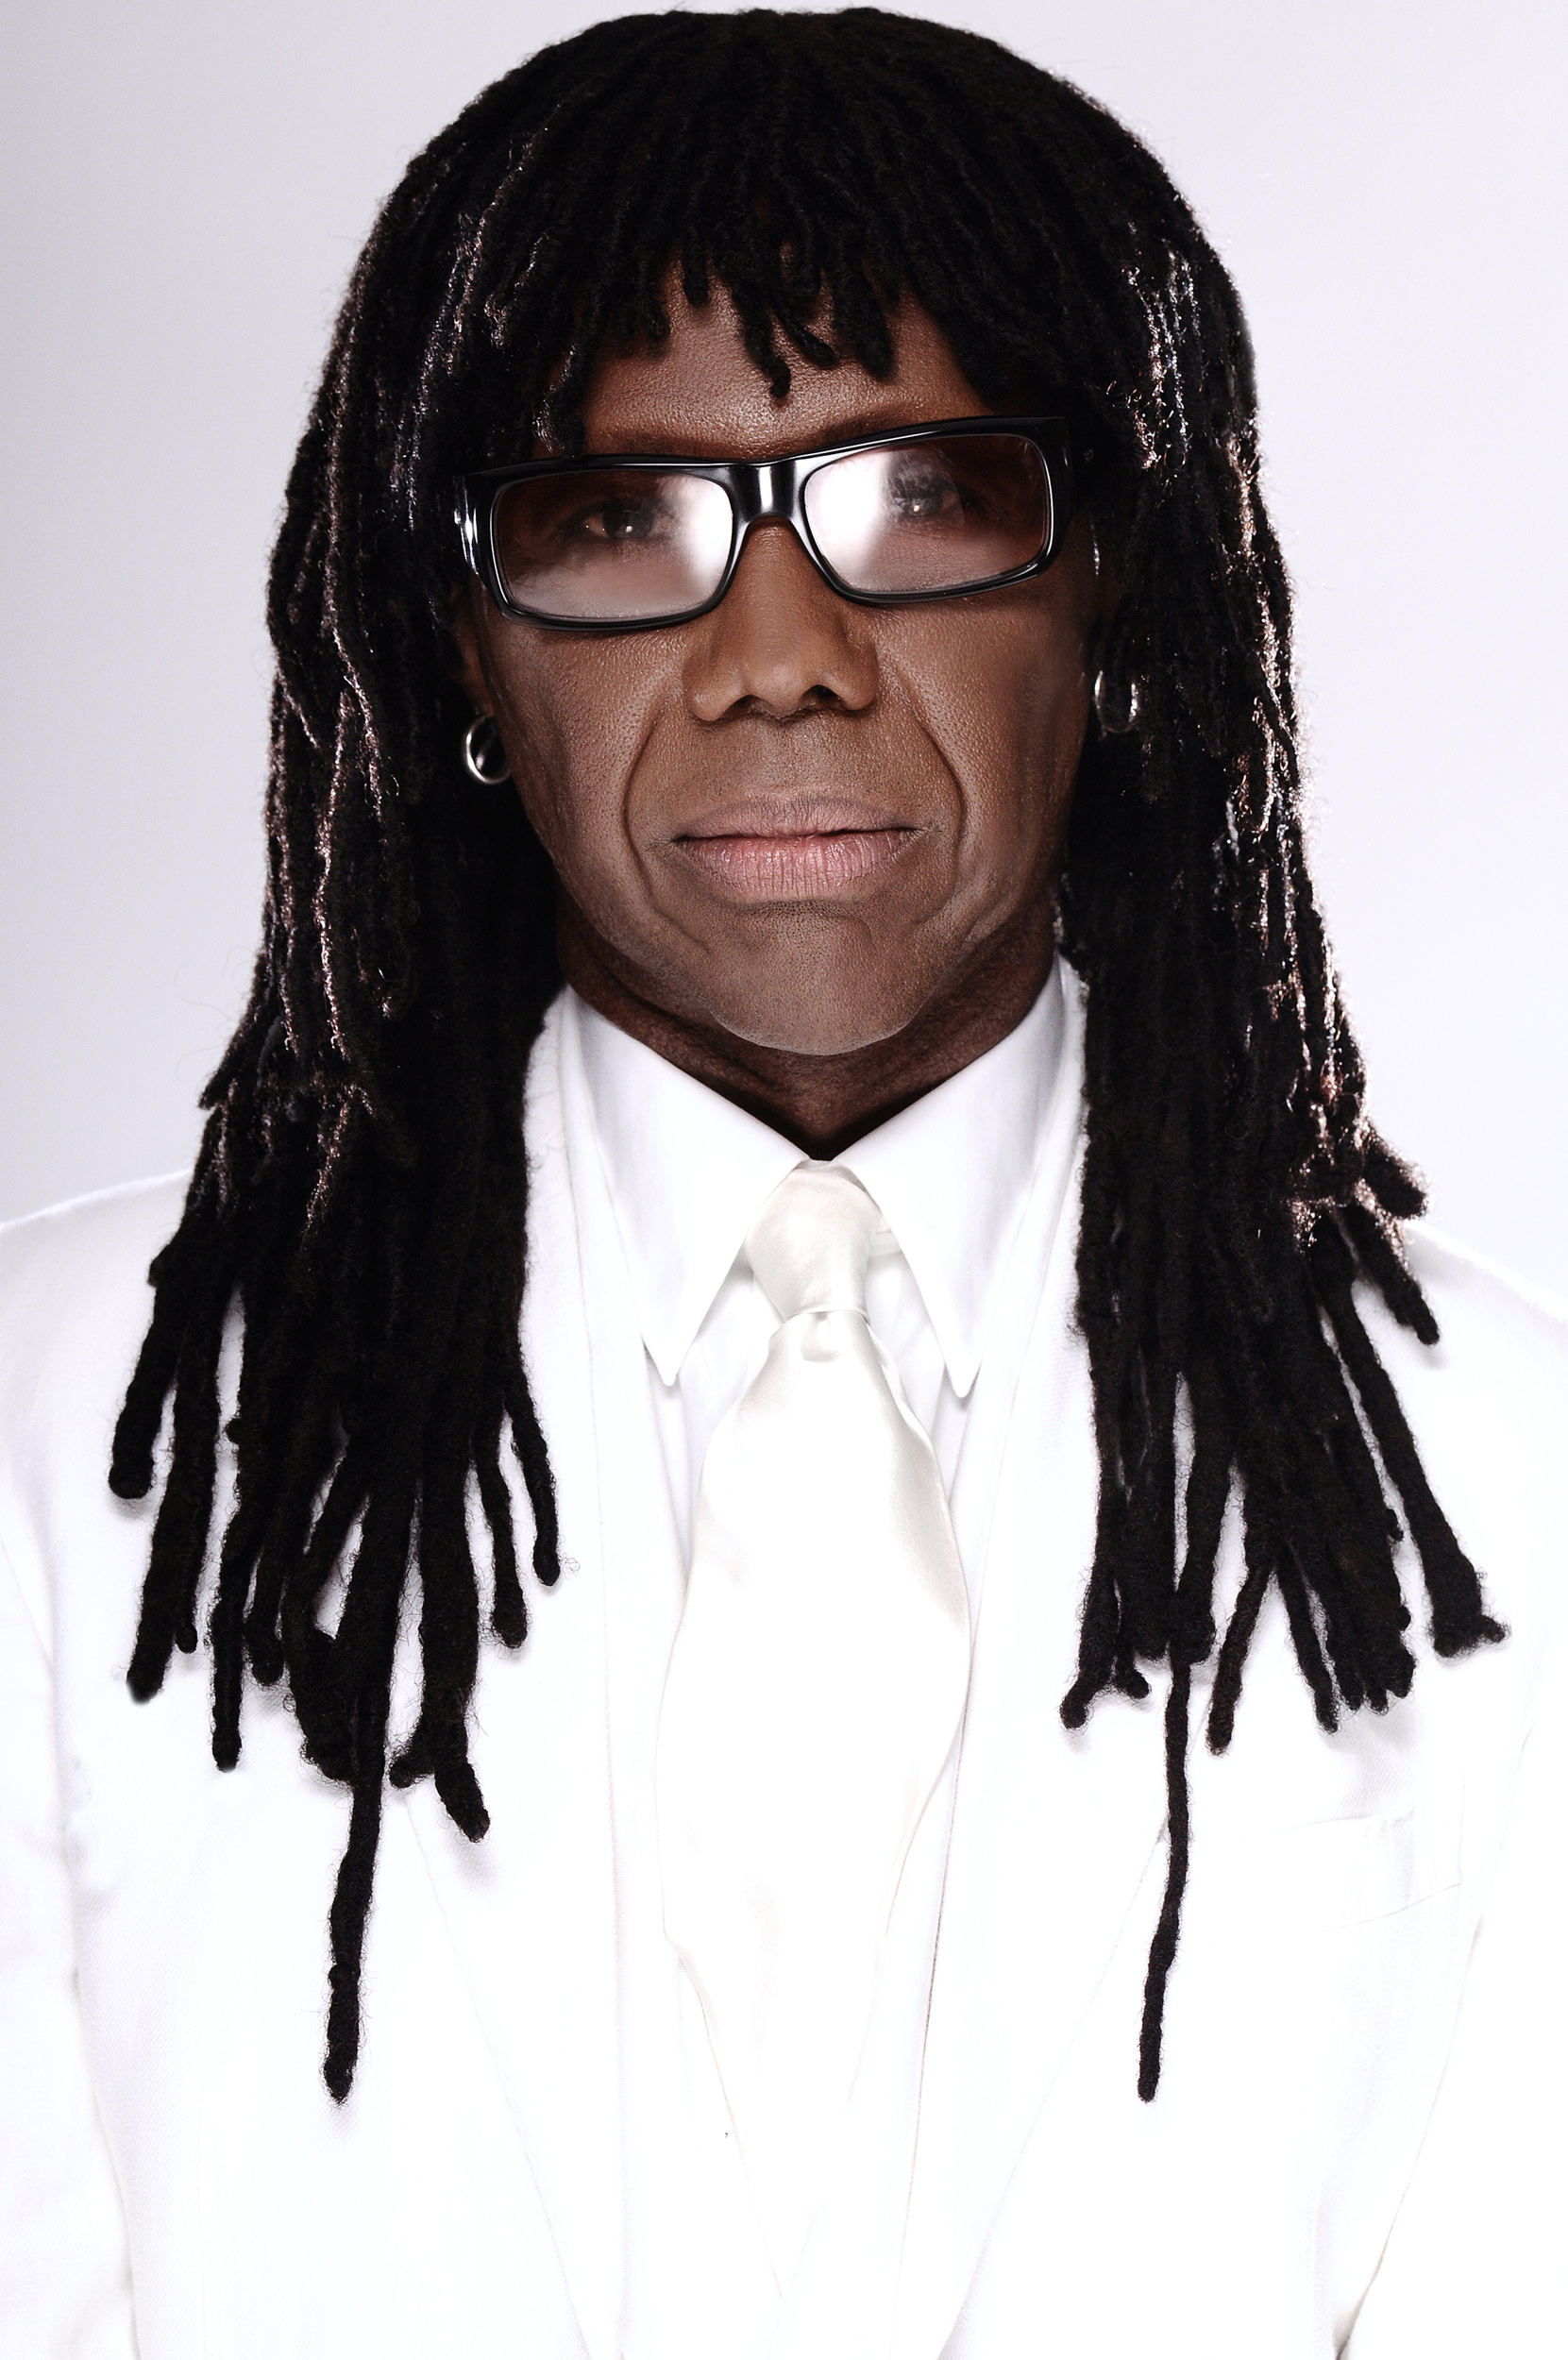 Nile Rodgers's Headshot